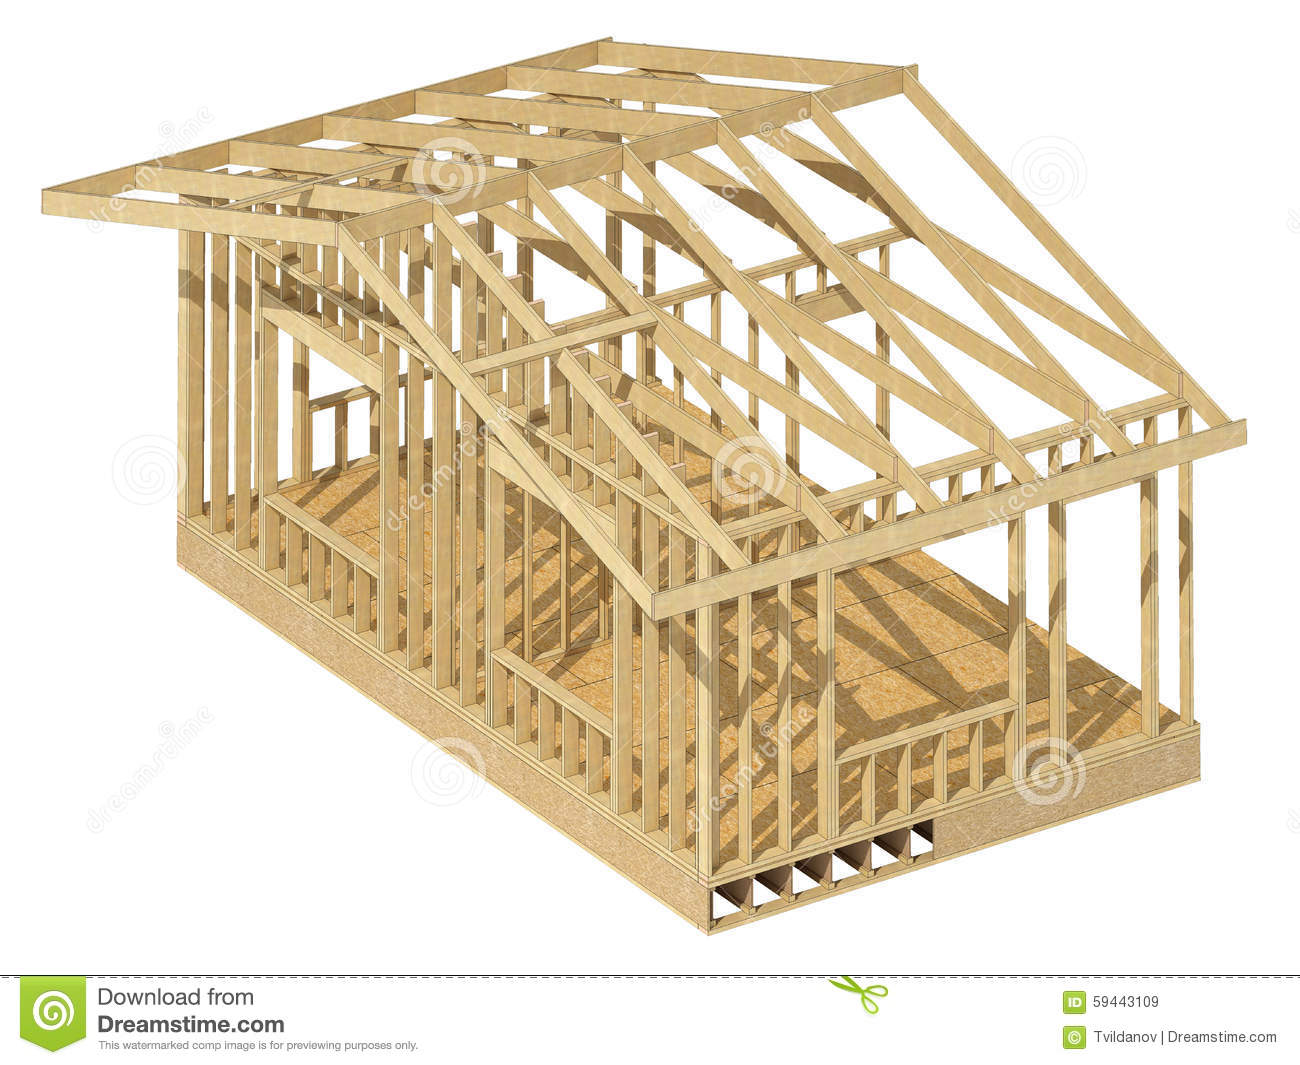 To Residential Construction New Residential Construction Home Wood Framing Stock Illustration